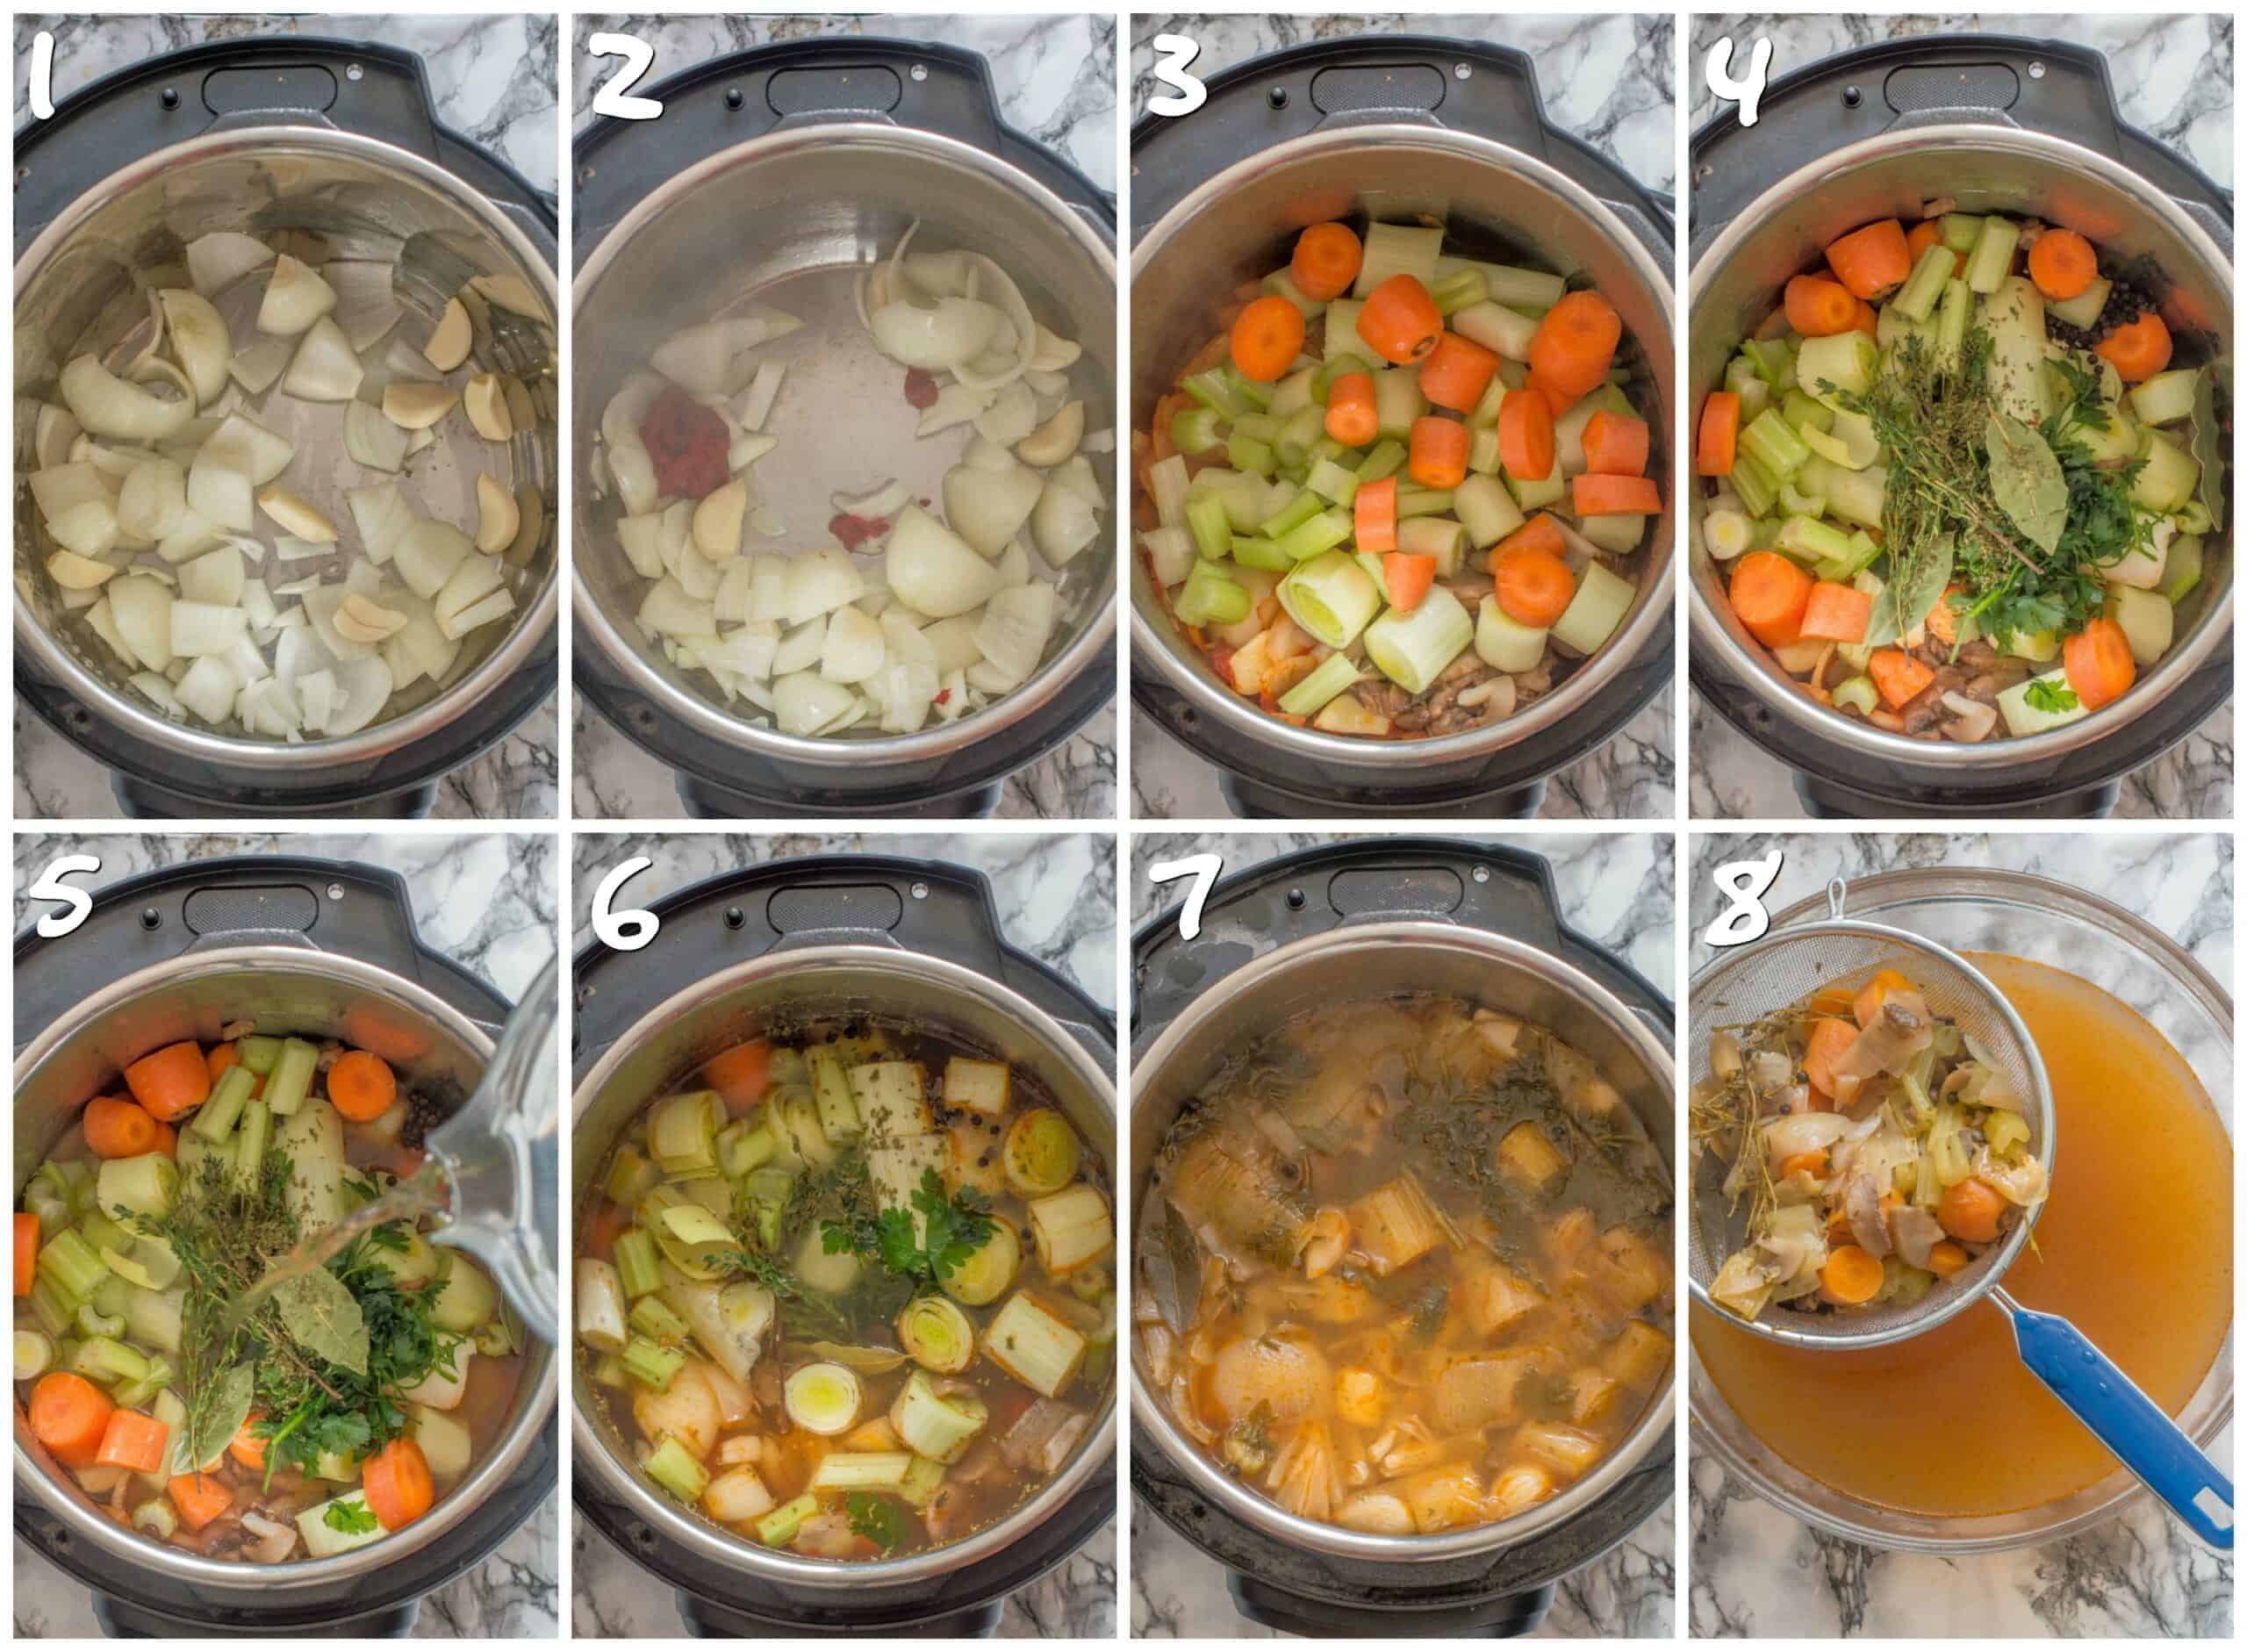 steps 1-8 cooking the veggies in an instant pot